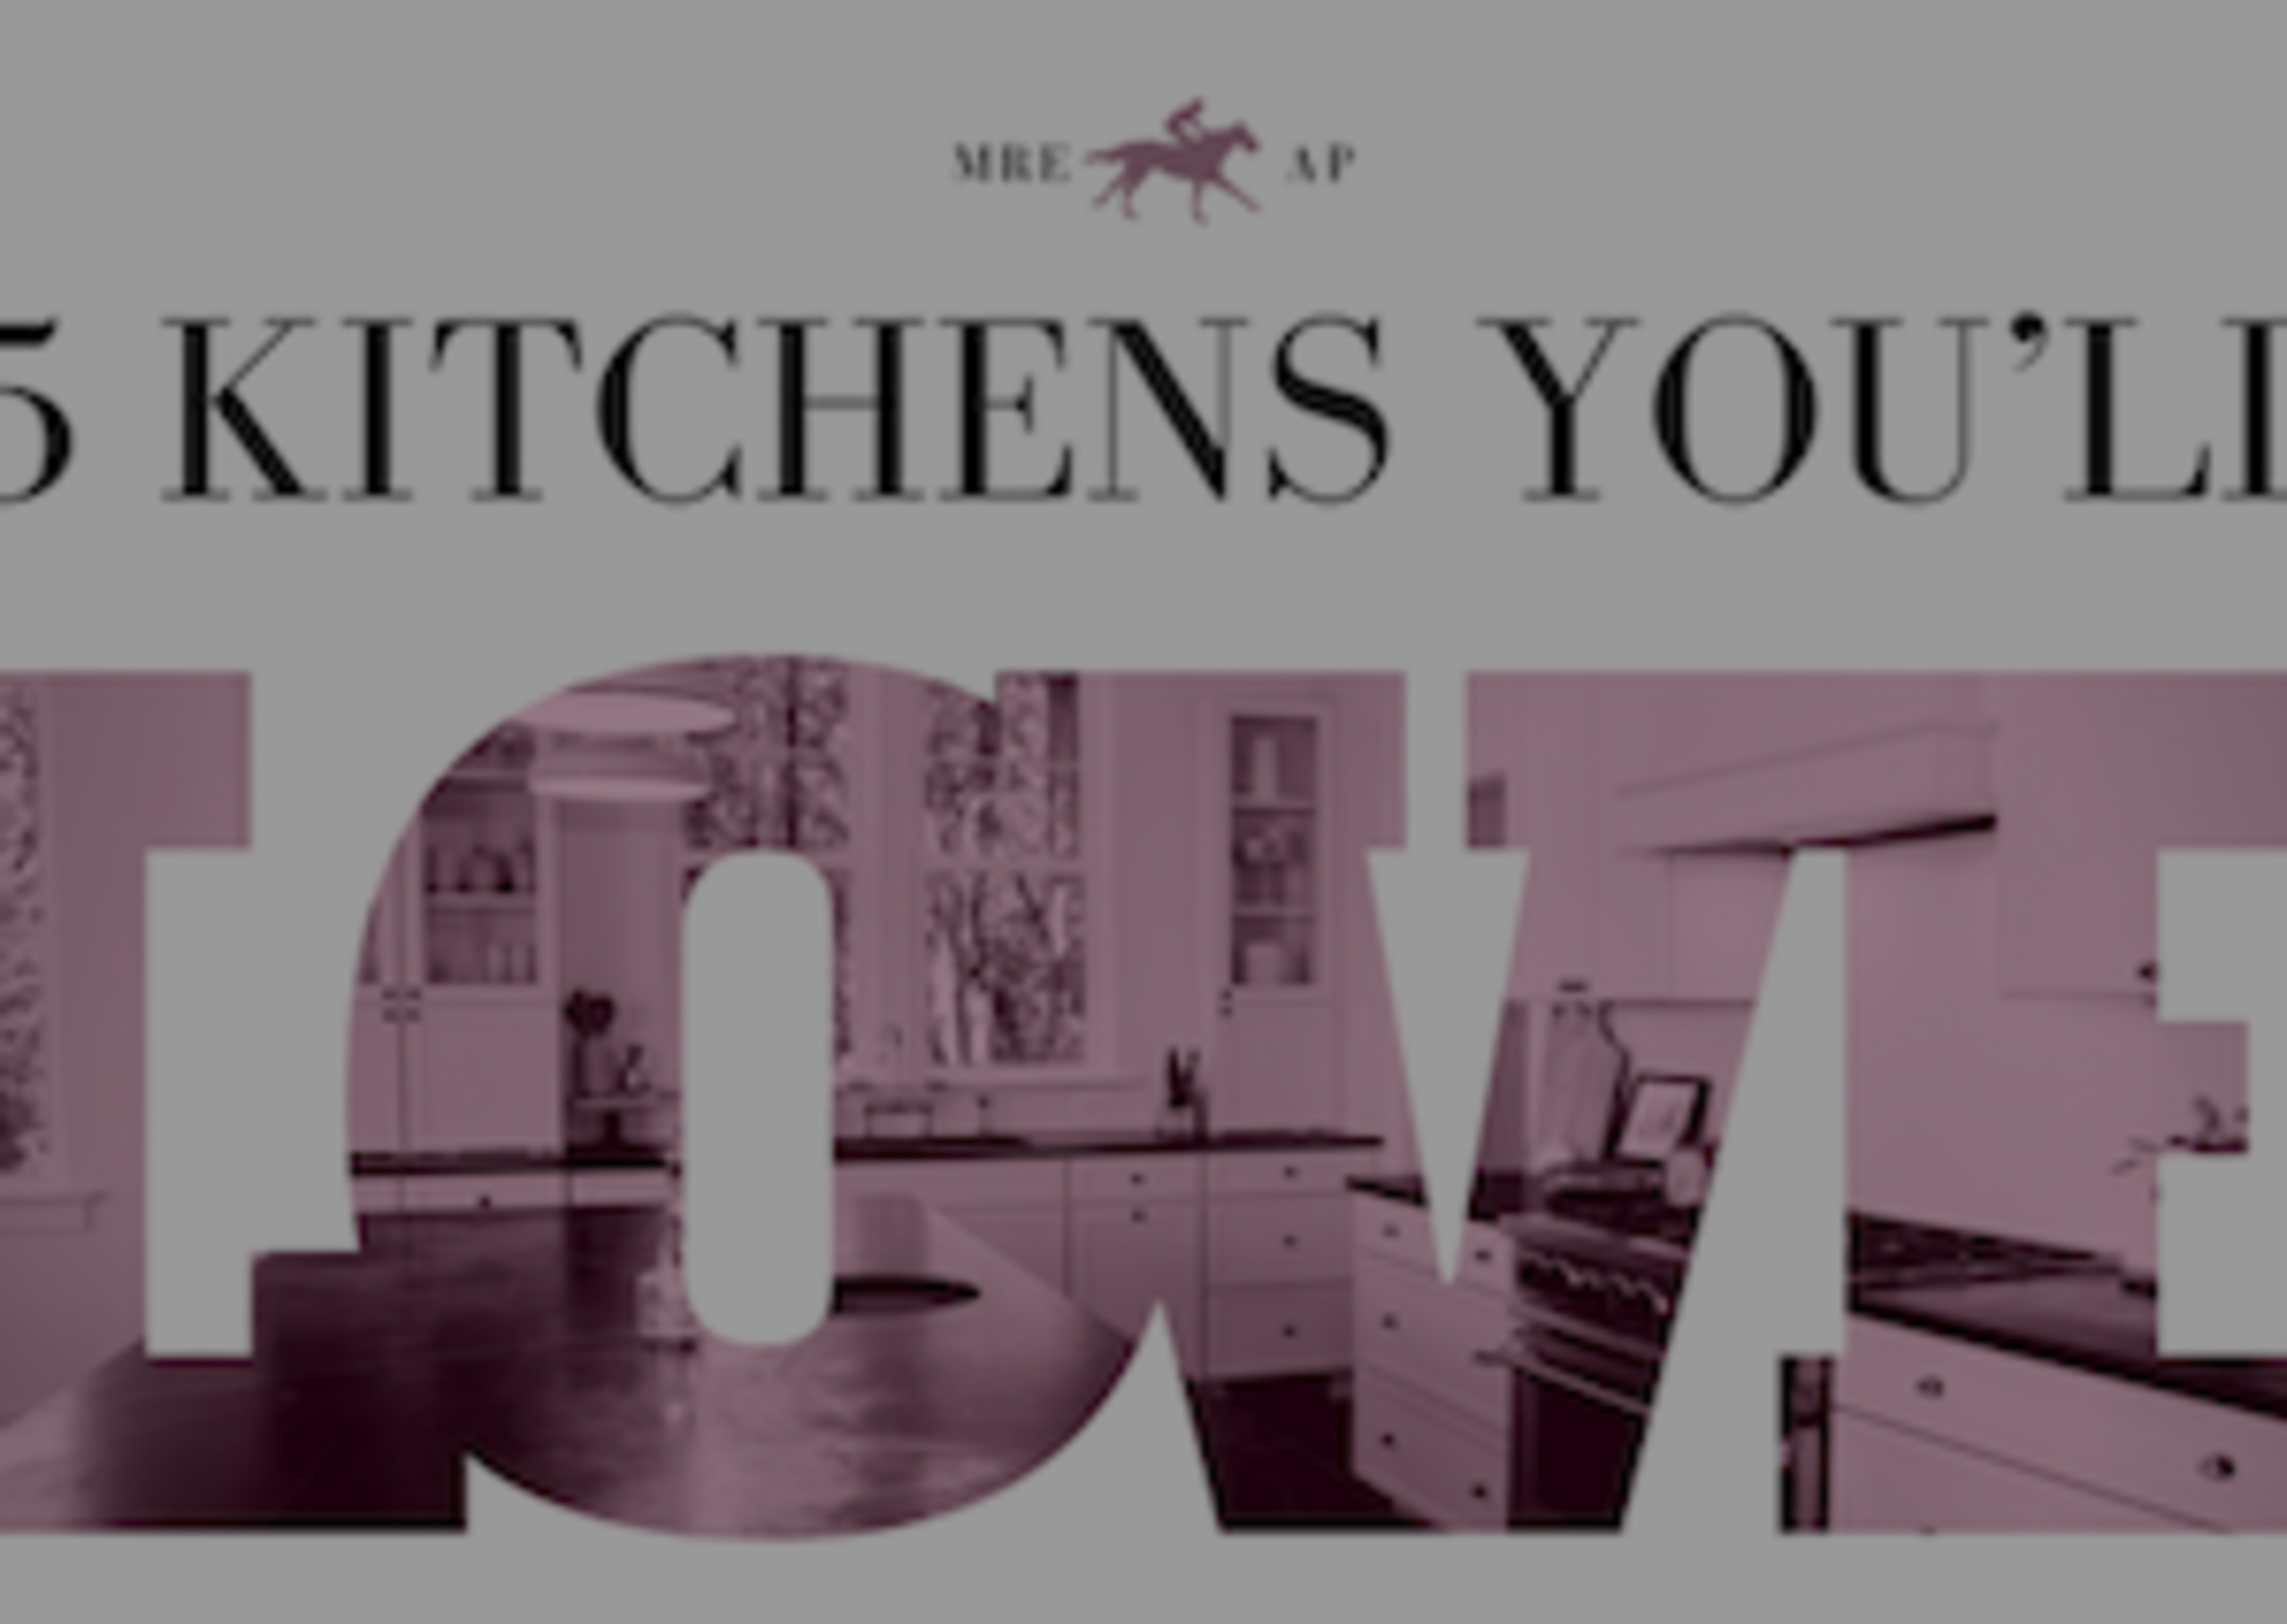 5 Kitchens You'll Love